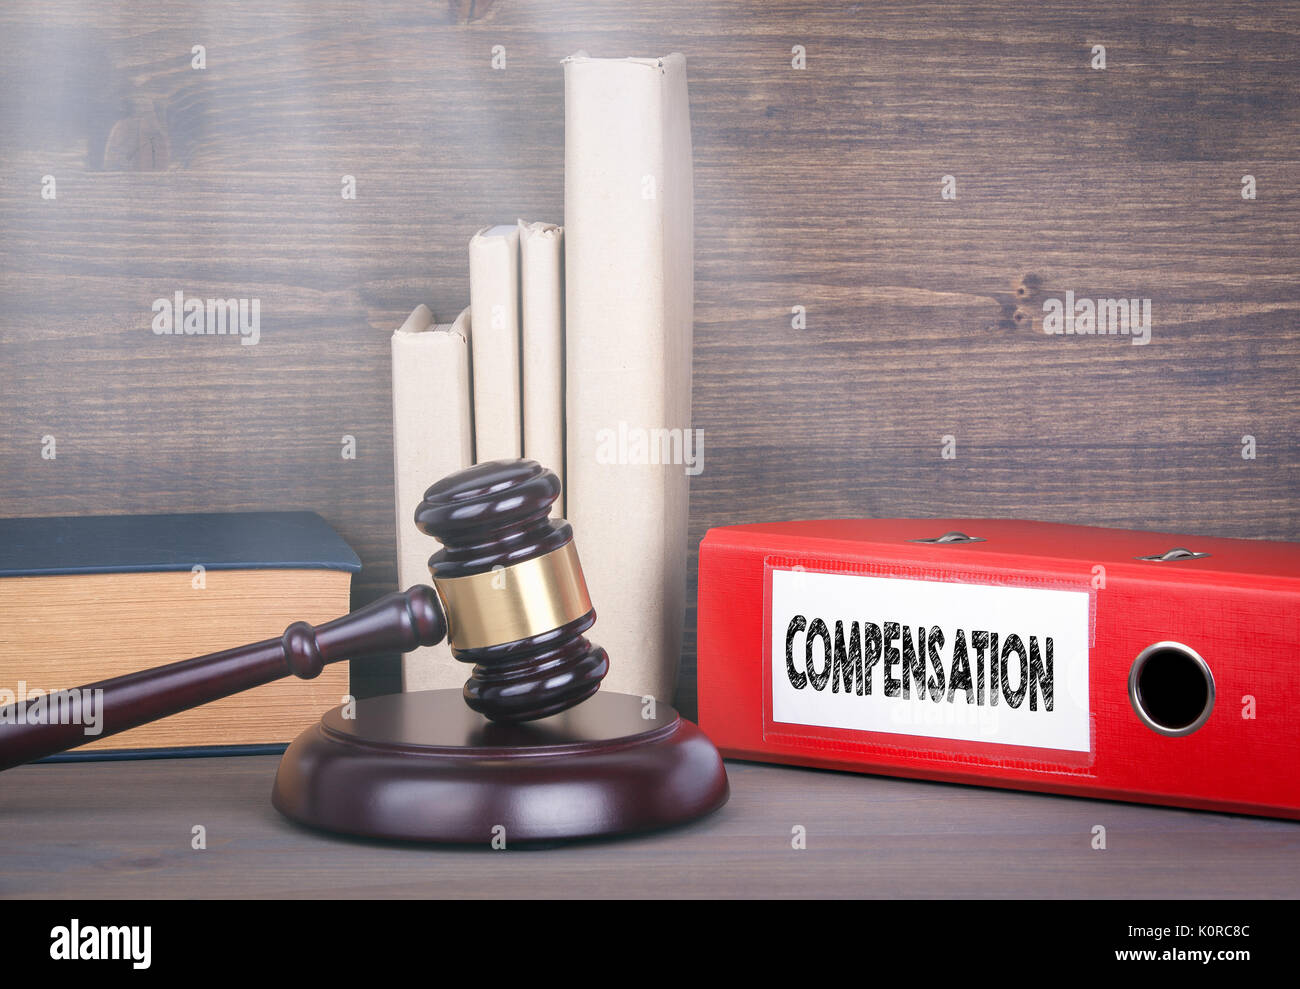 Compensation. Wooden gavel and books in background. Law and justice concept - Stock Image